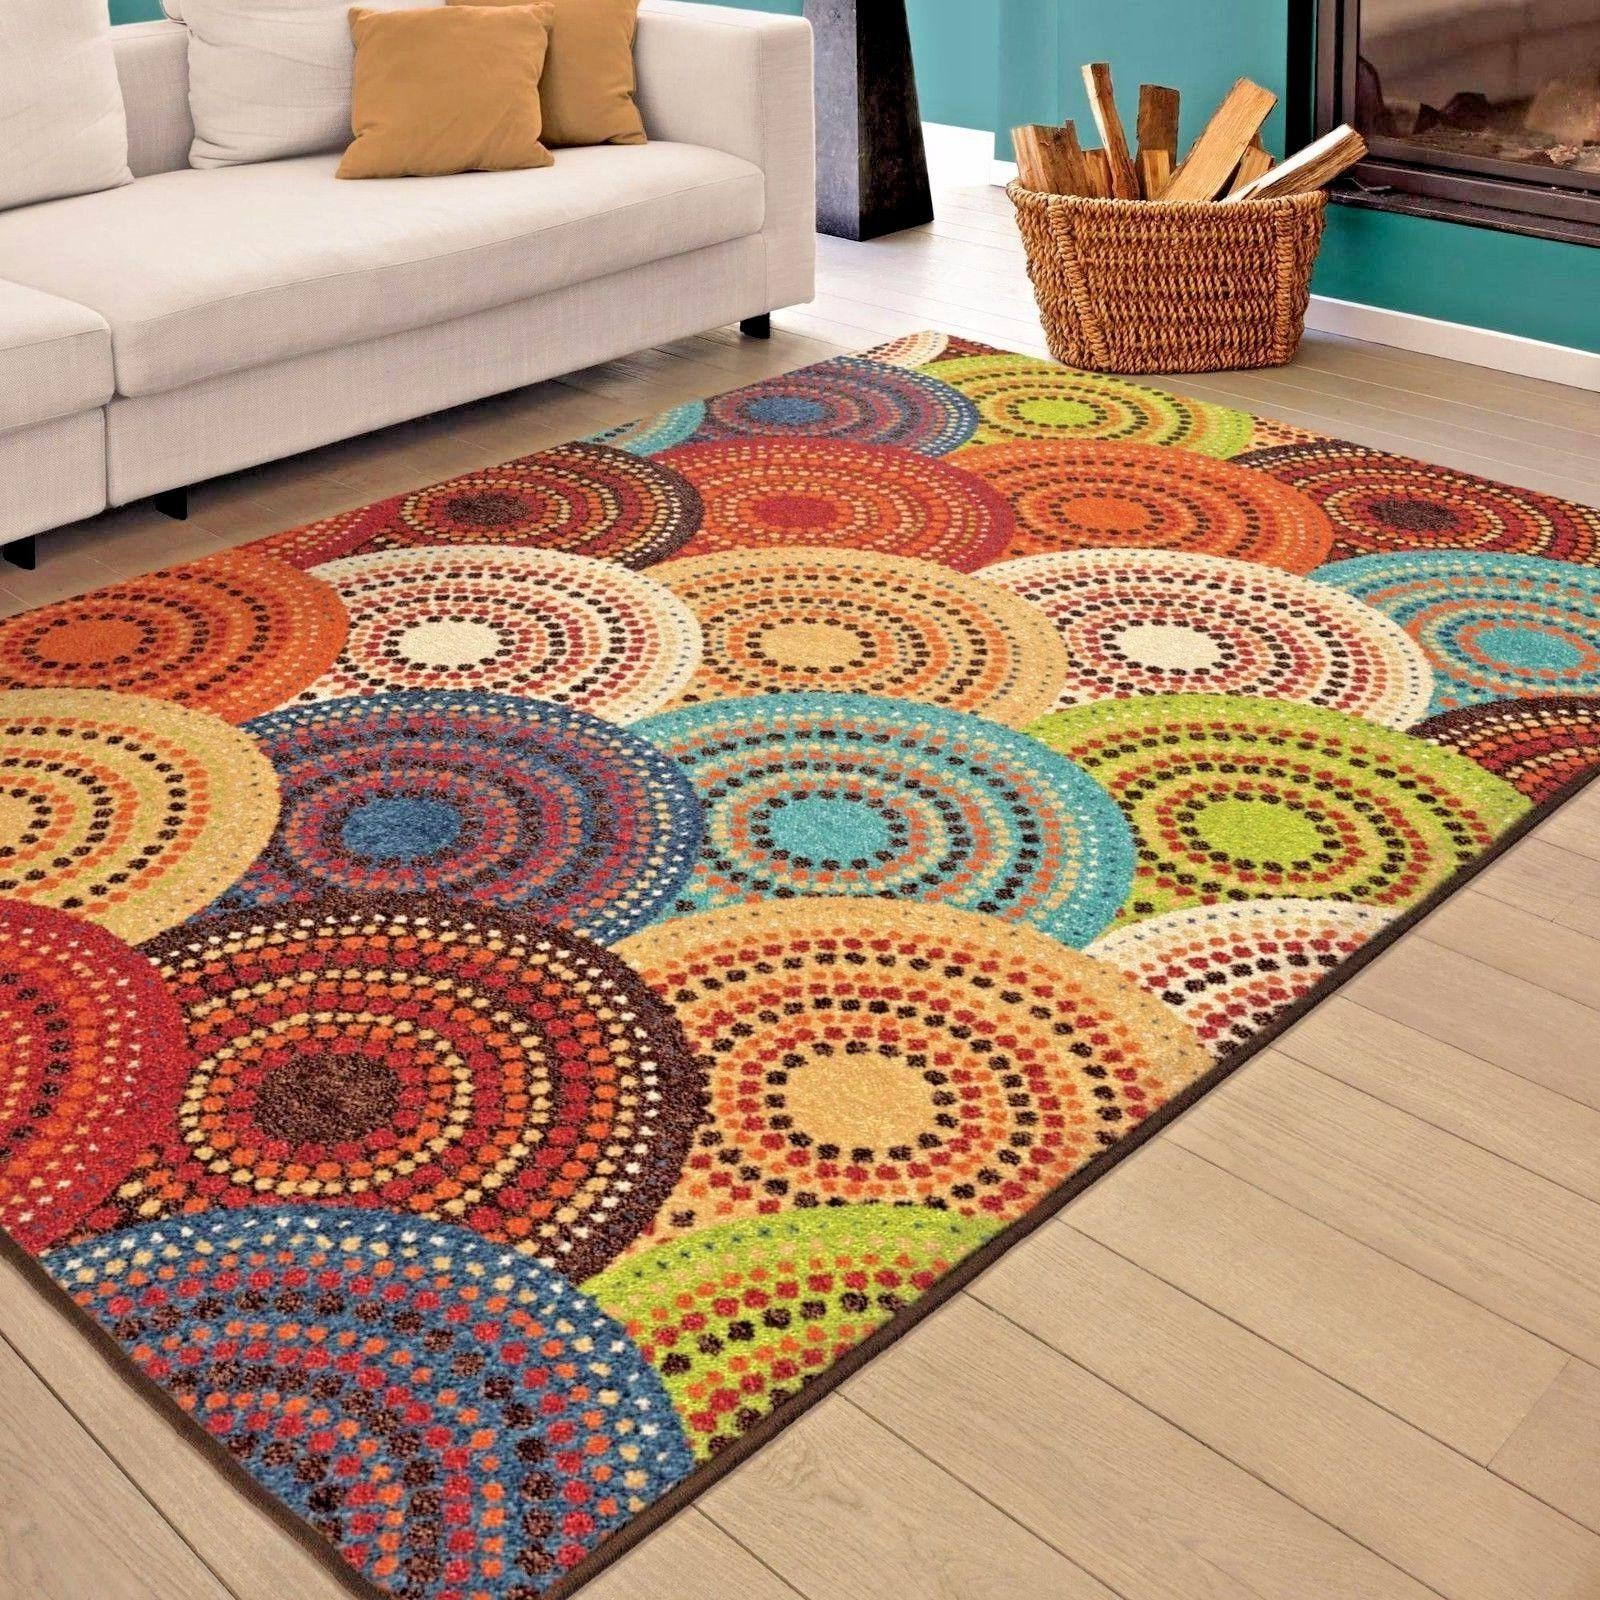 Contemporary Rugs Carpets Design Ideas Home Interior